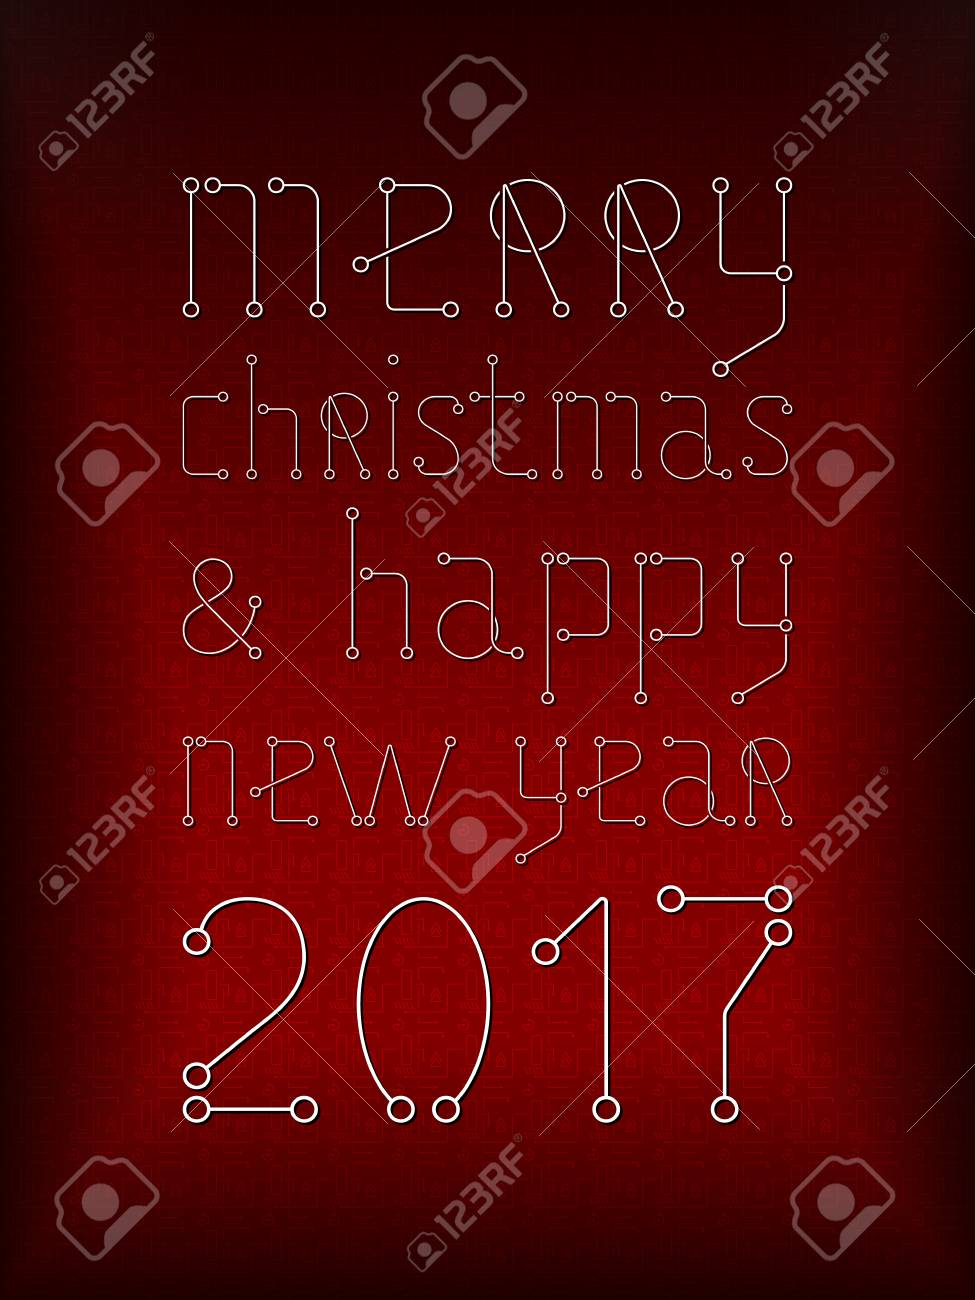 Merry christmas holiday greeting card geometry lines art techno merry christmas holiday greeting card geometry lines art techno style banner red color m4hsunfo